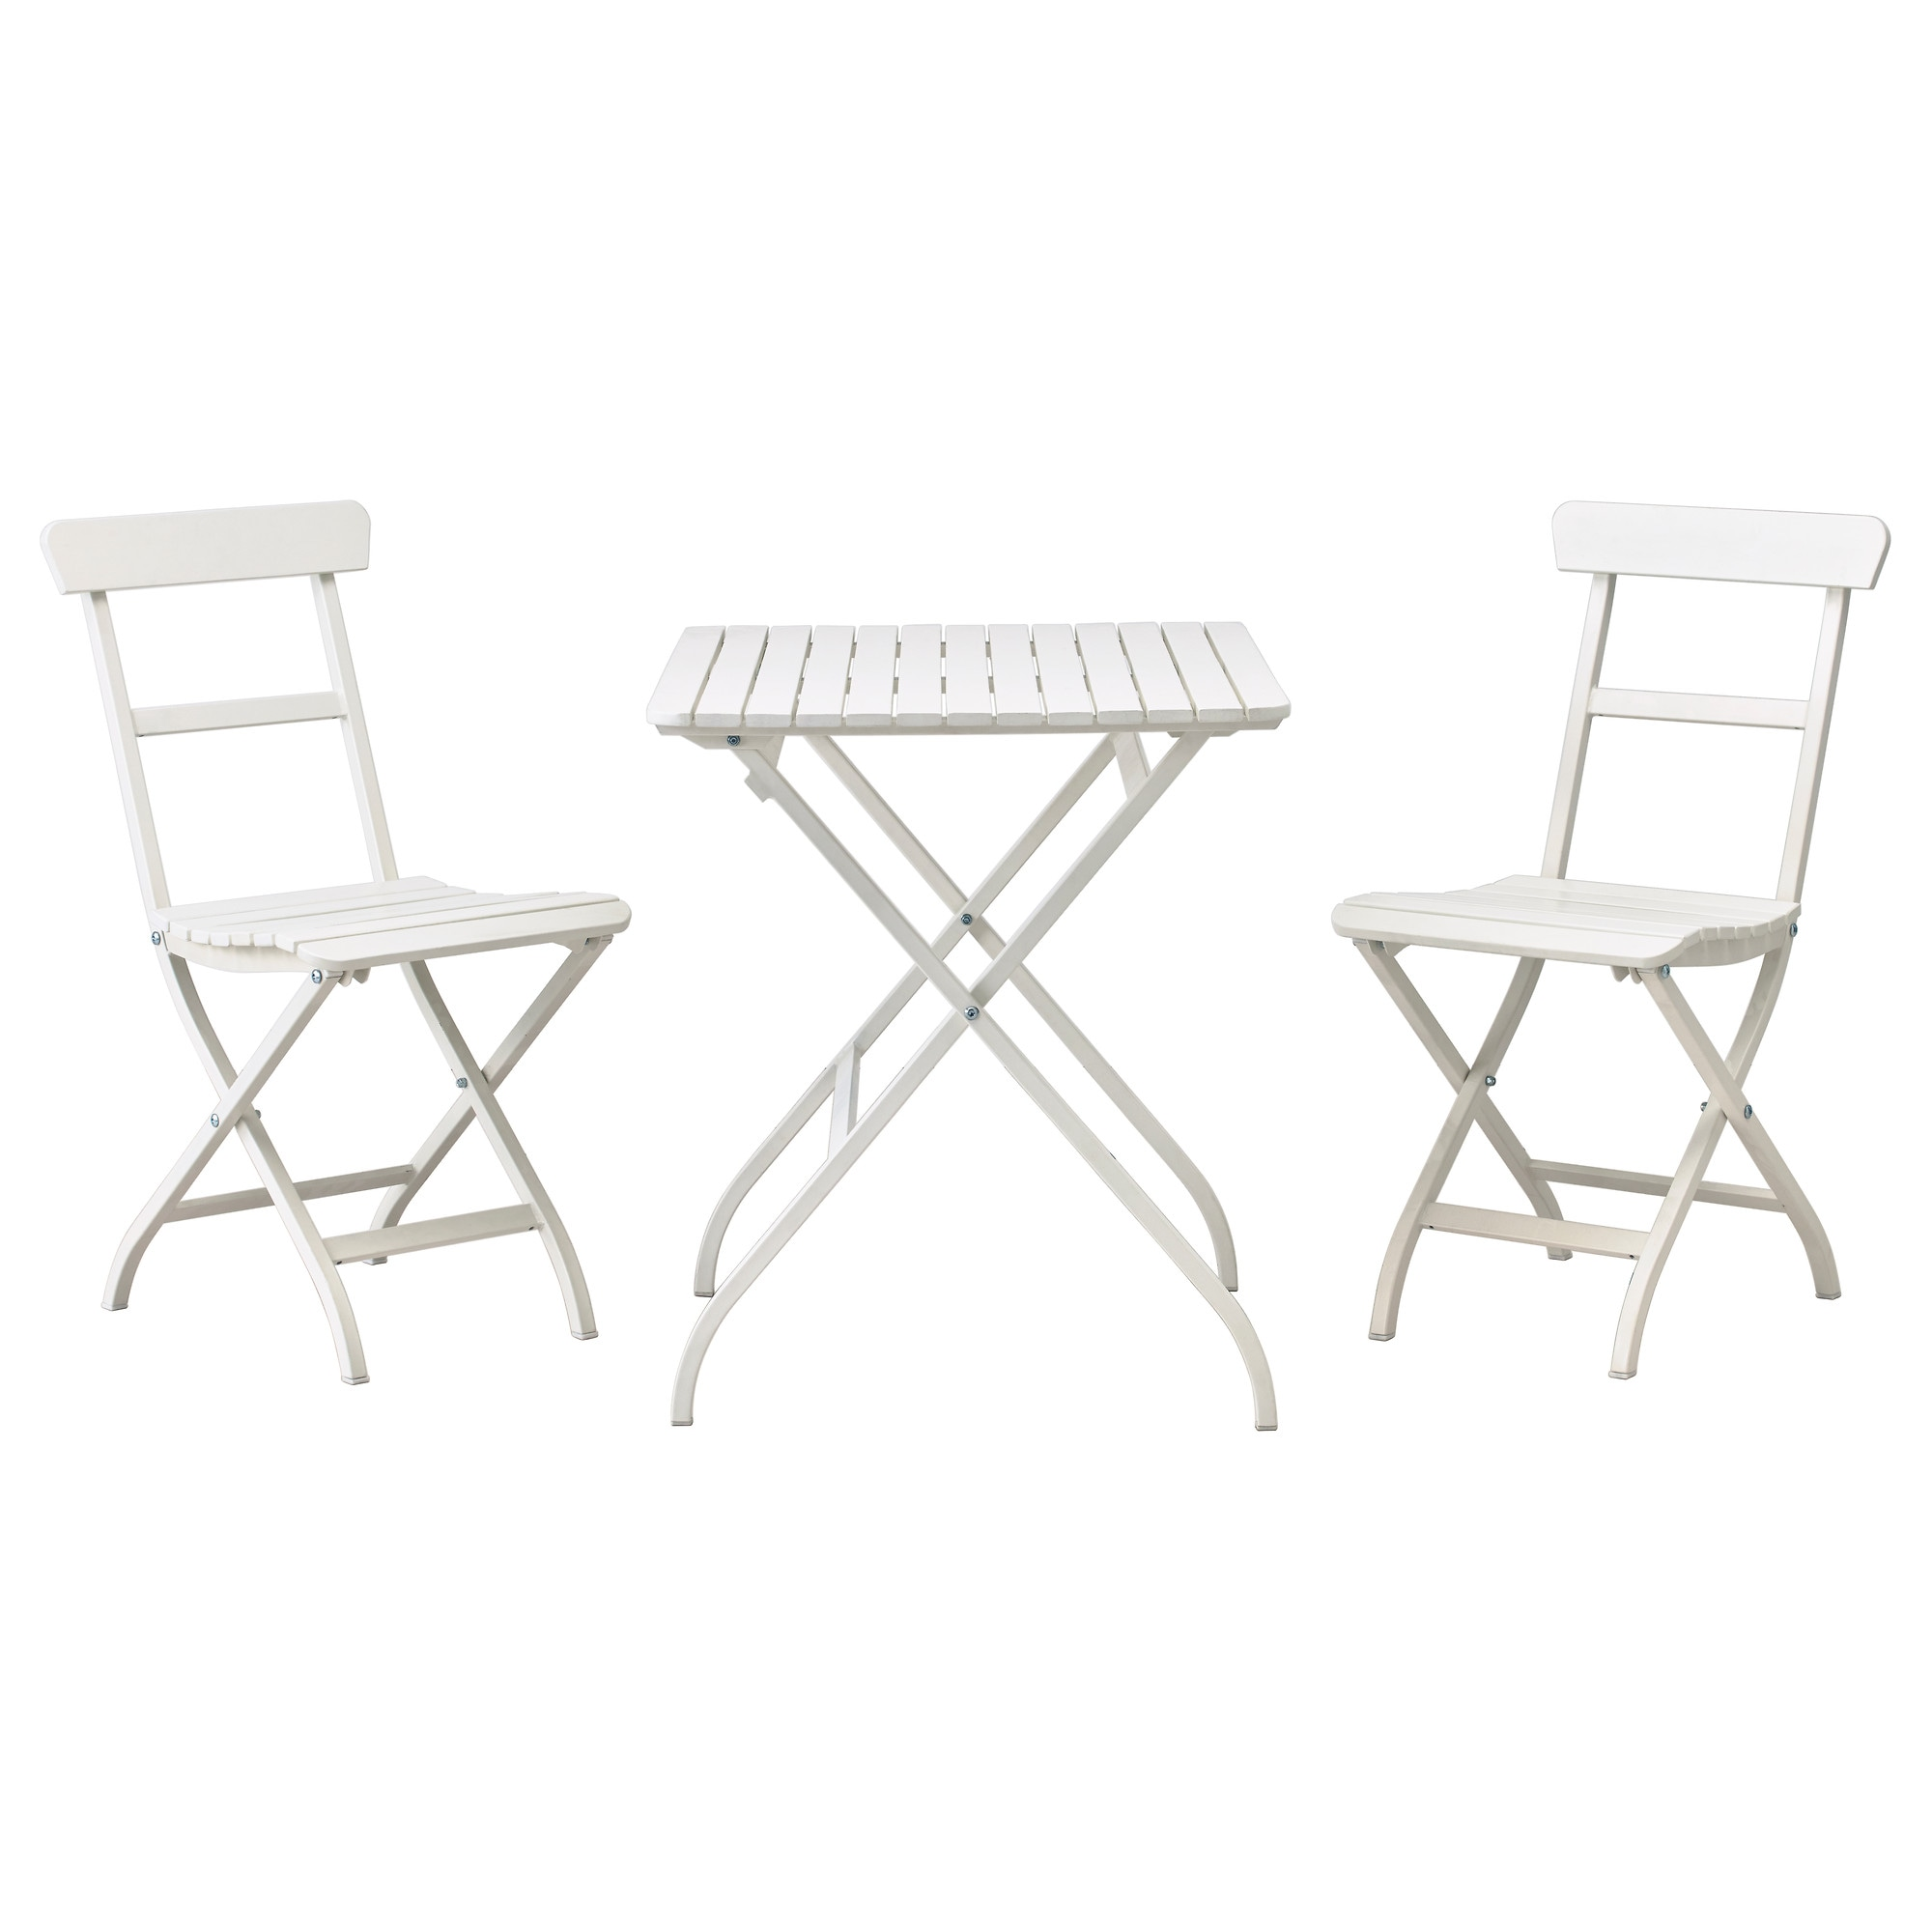 MLAR Table2 chairs outdoor IKEA